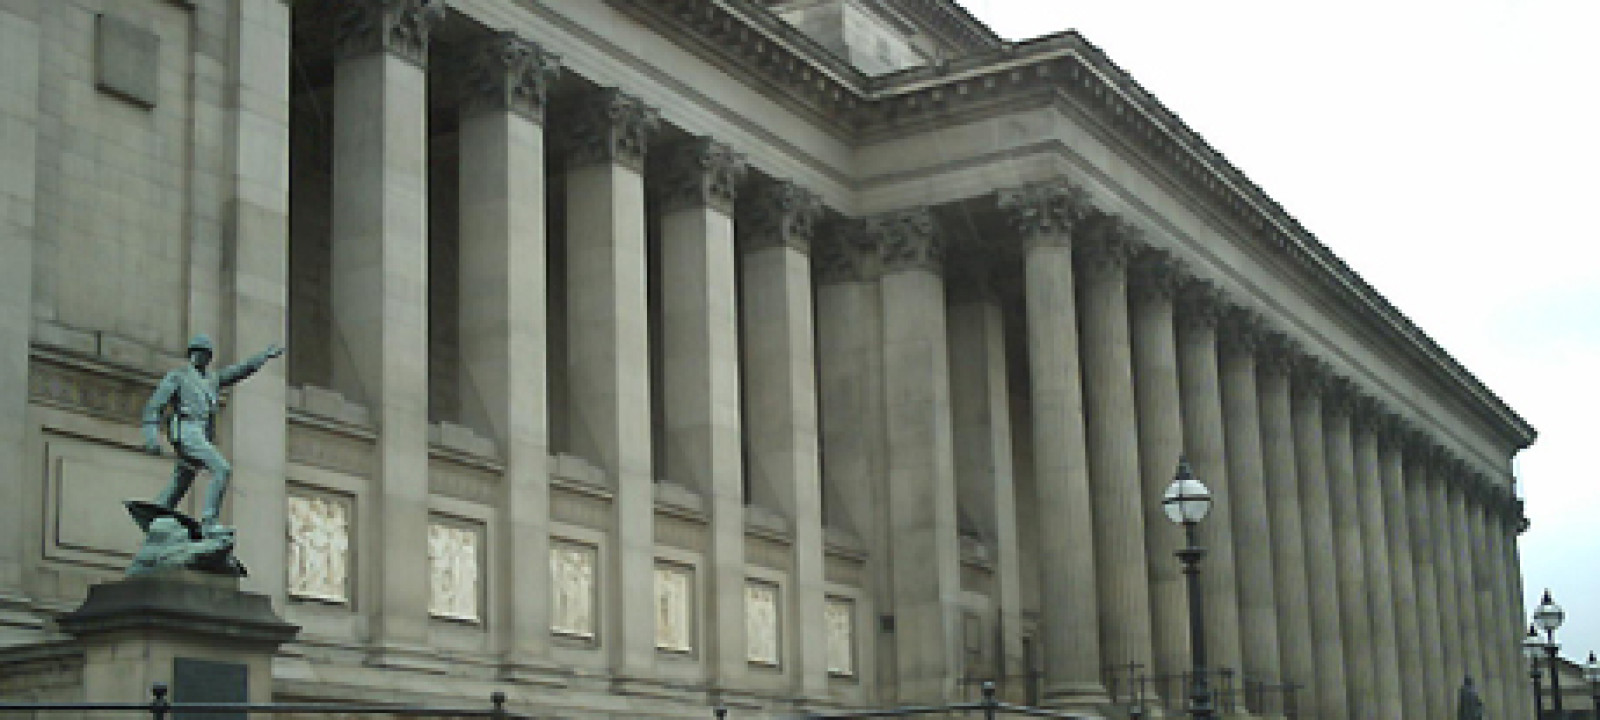 St. George's Hall, Liverpool